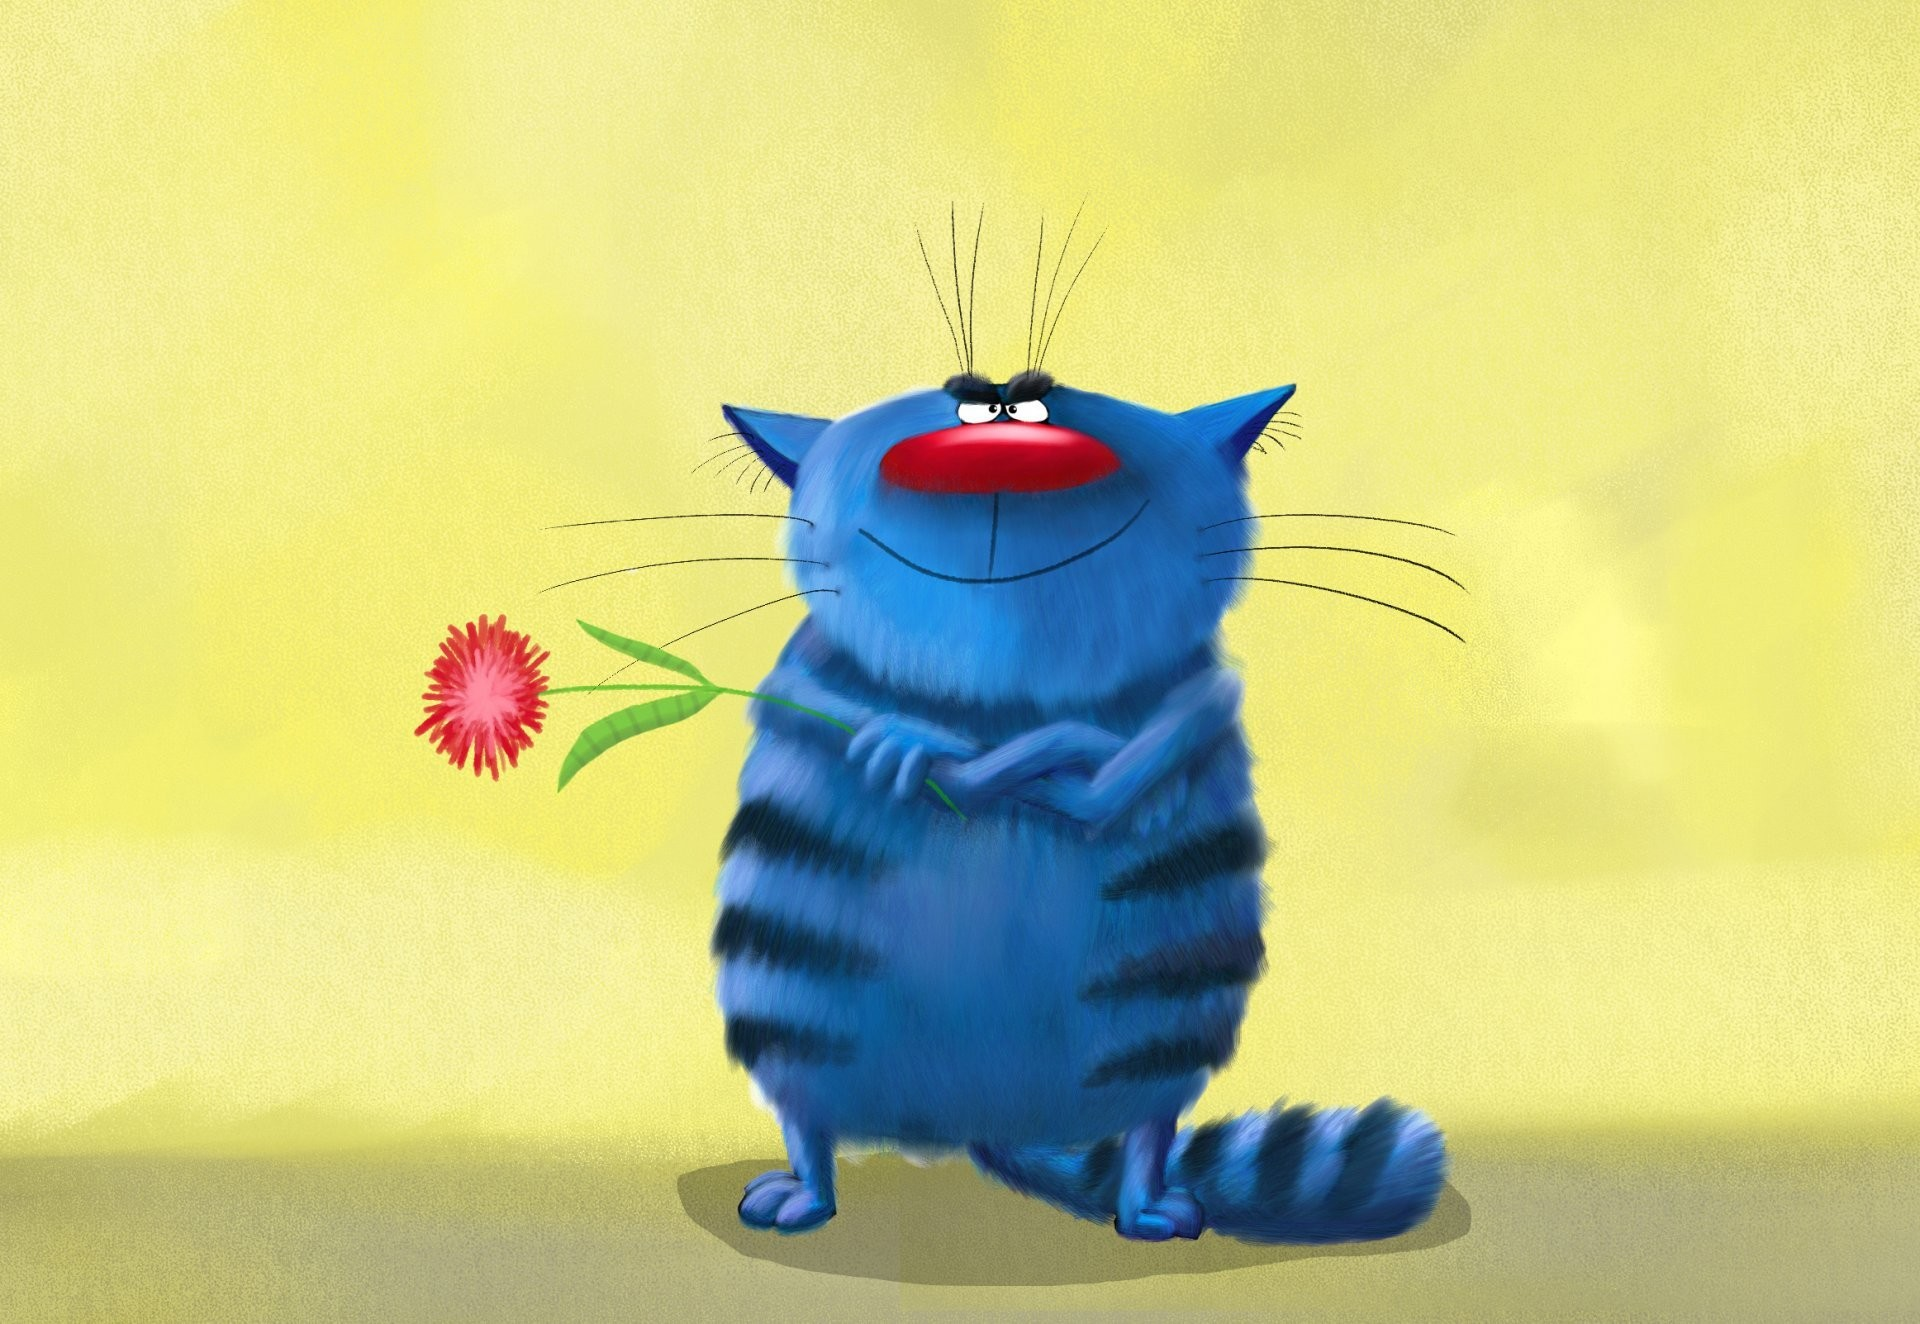 art painting pattern painting cat funny striped blue cool cat smiles holds  in the paws flower